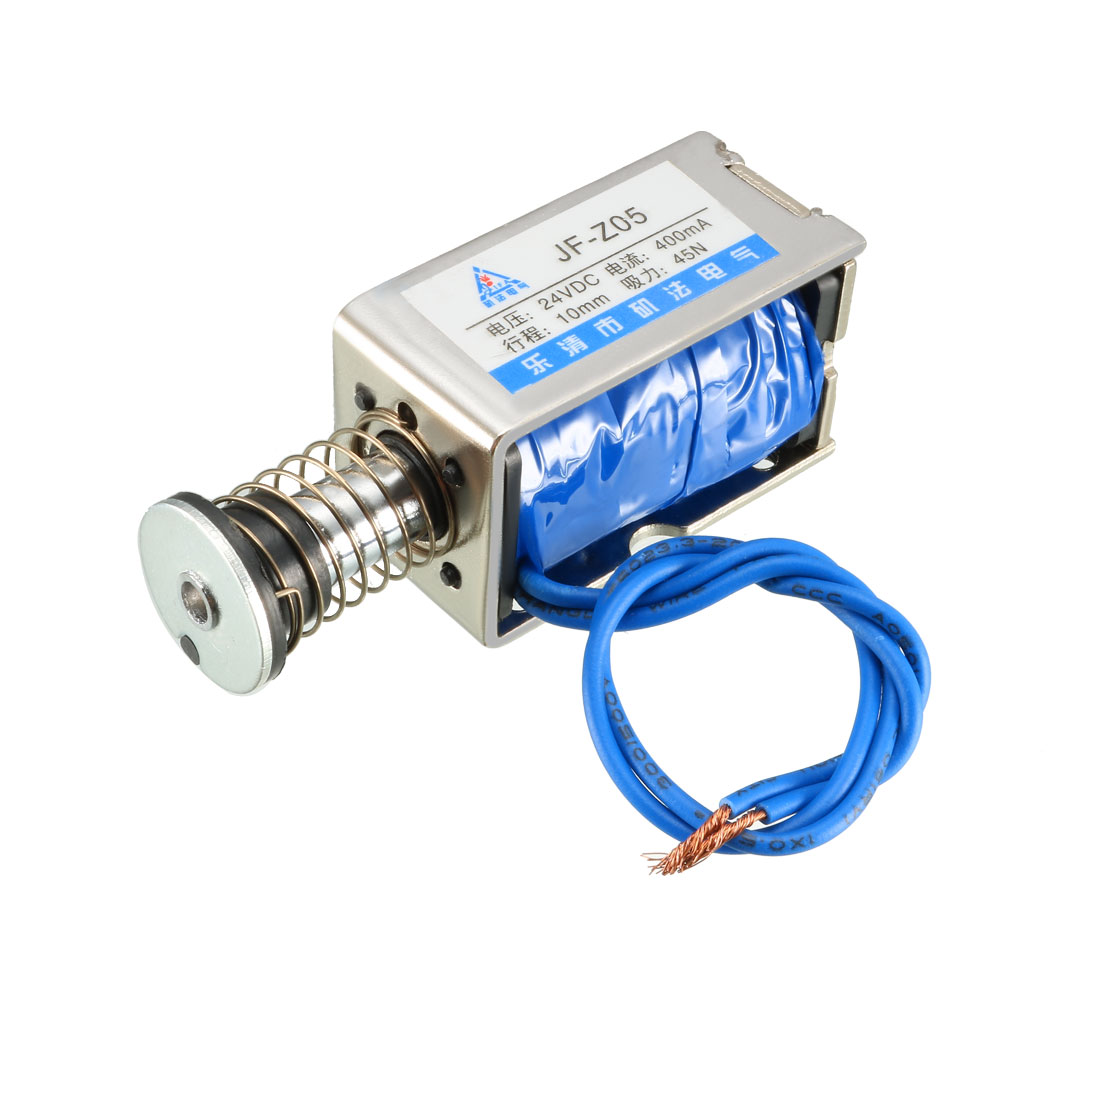 Uxcell JF-Z05 DC 24V 400mA 45N 10mm Pull Push Type Open Frame Linear Motion Solenoid Electromagnet